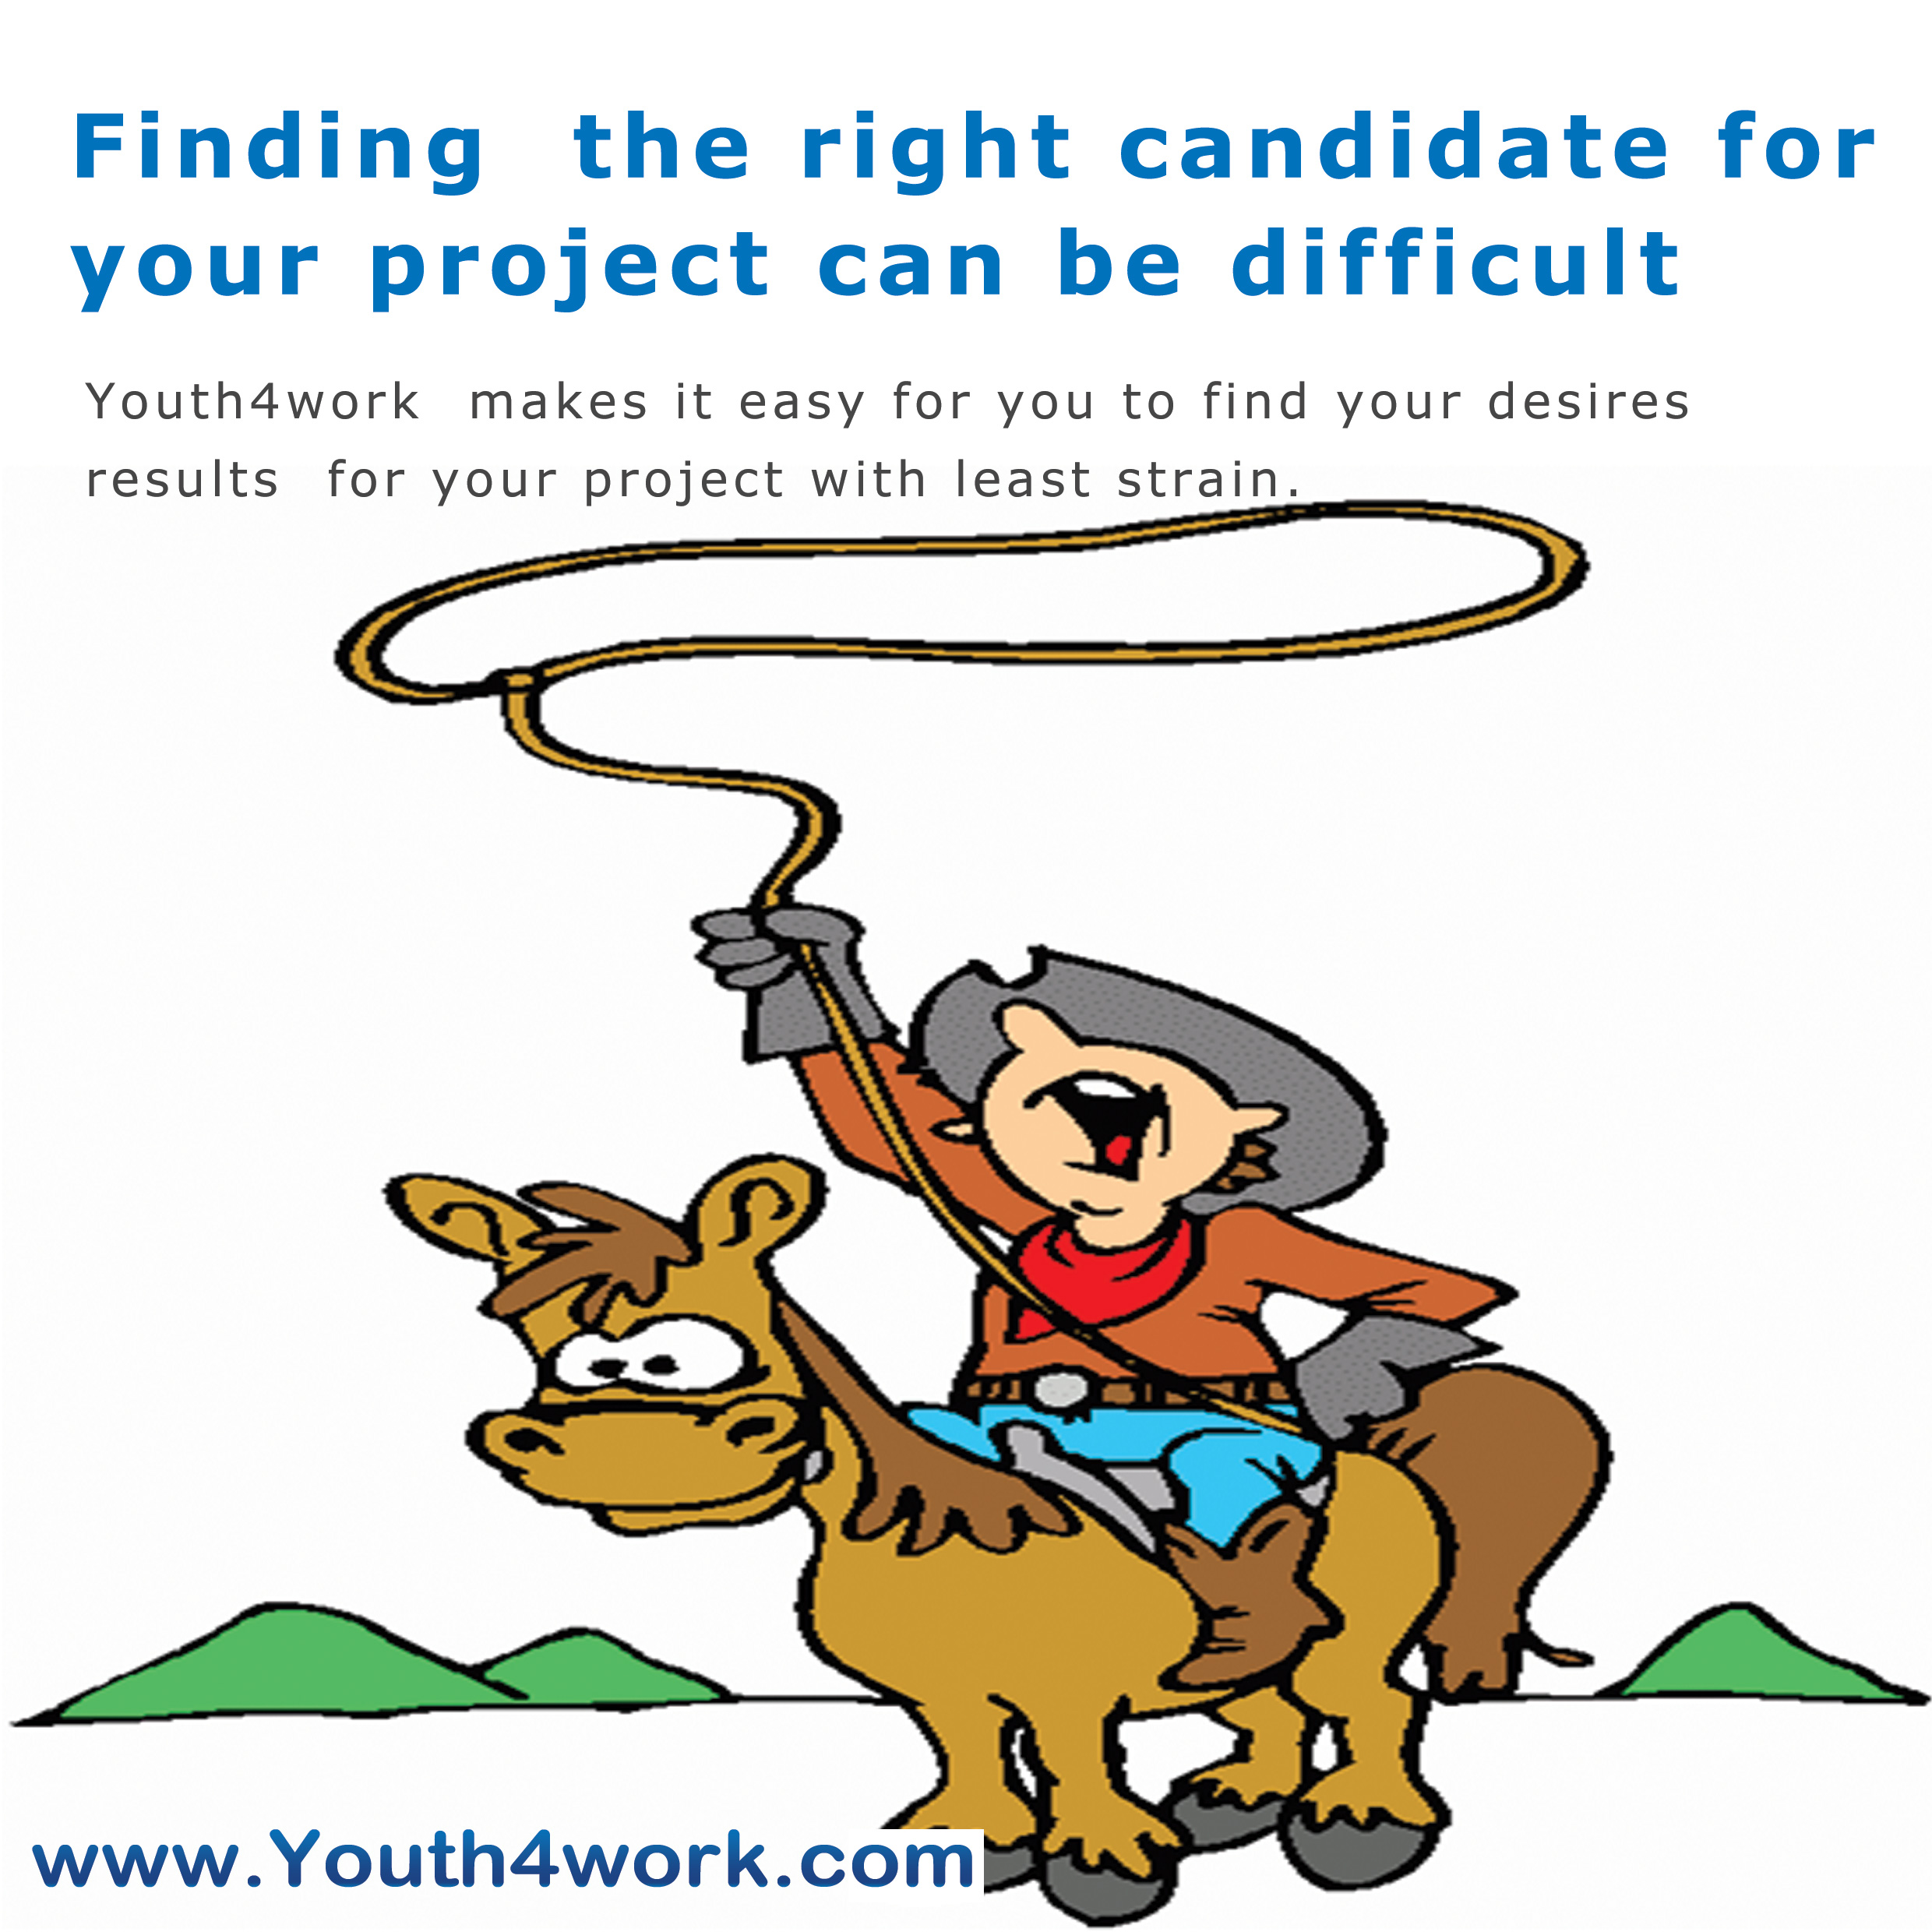 Finding the right candidate for your project can be difficult